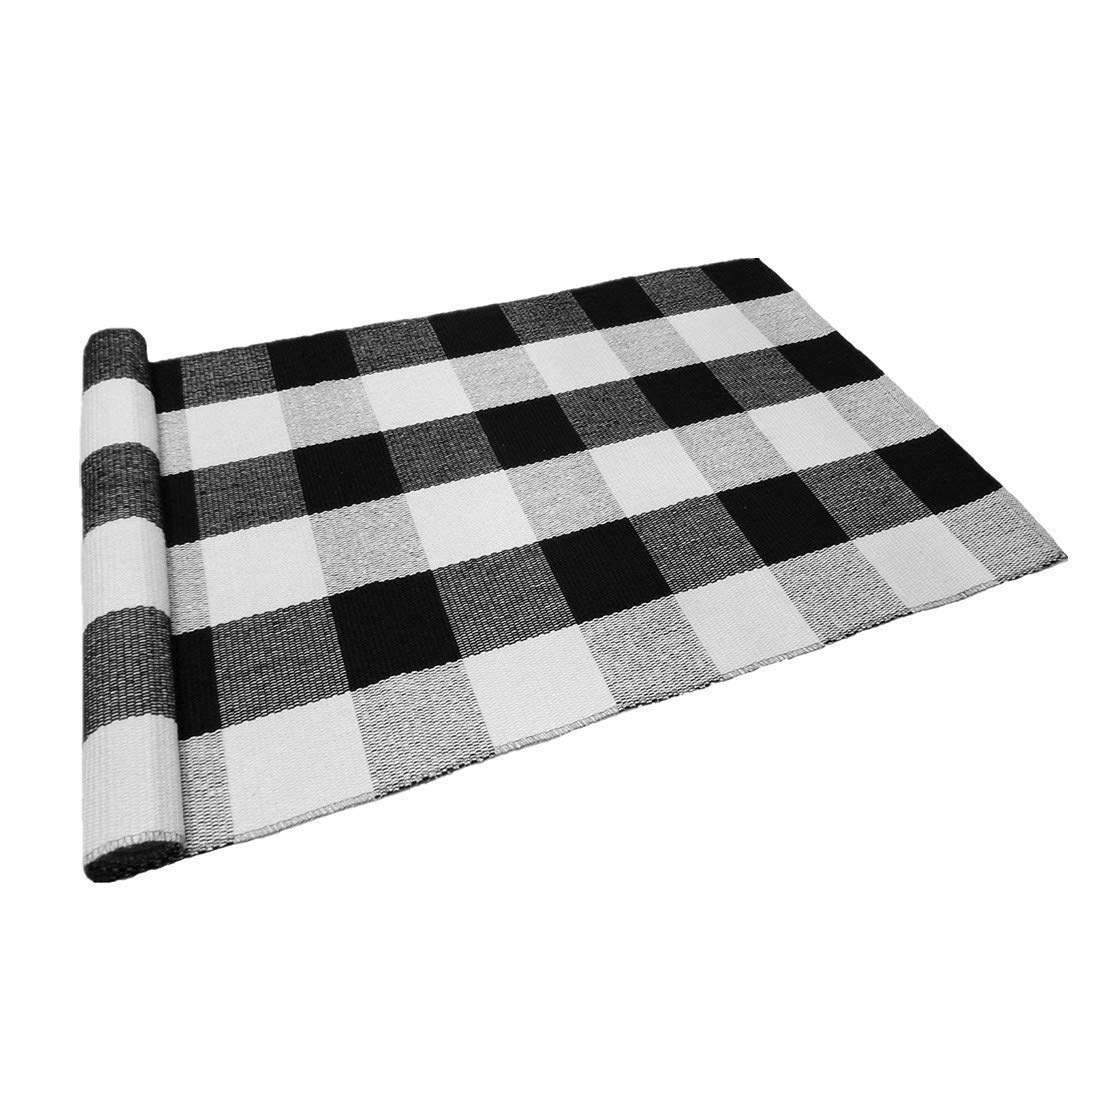 Levinis Black and White Plaid Rug 100% Cotton Porch Rugs Black/White Hand-woven Checkered Door Mat, 23.6